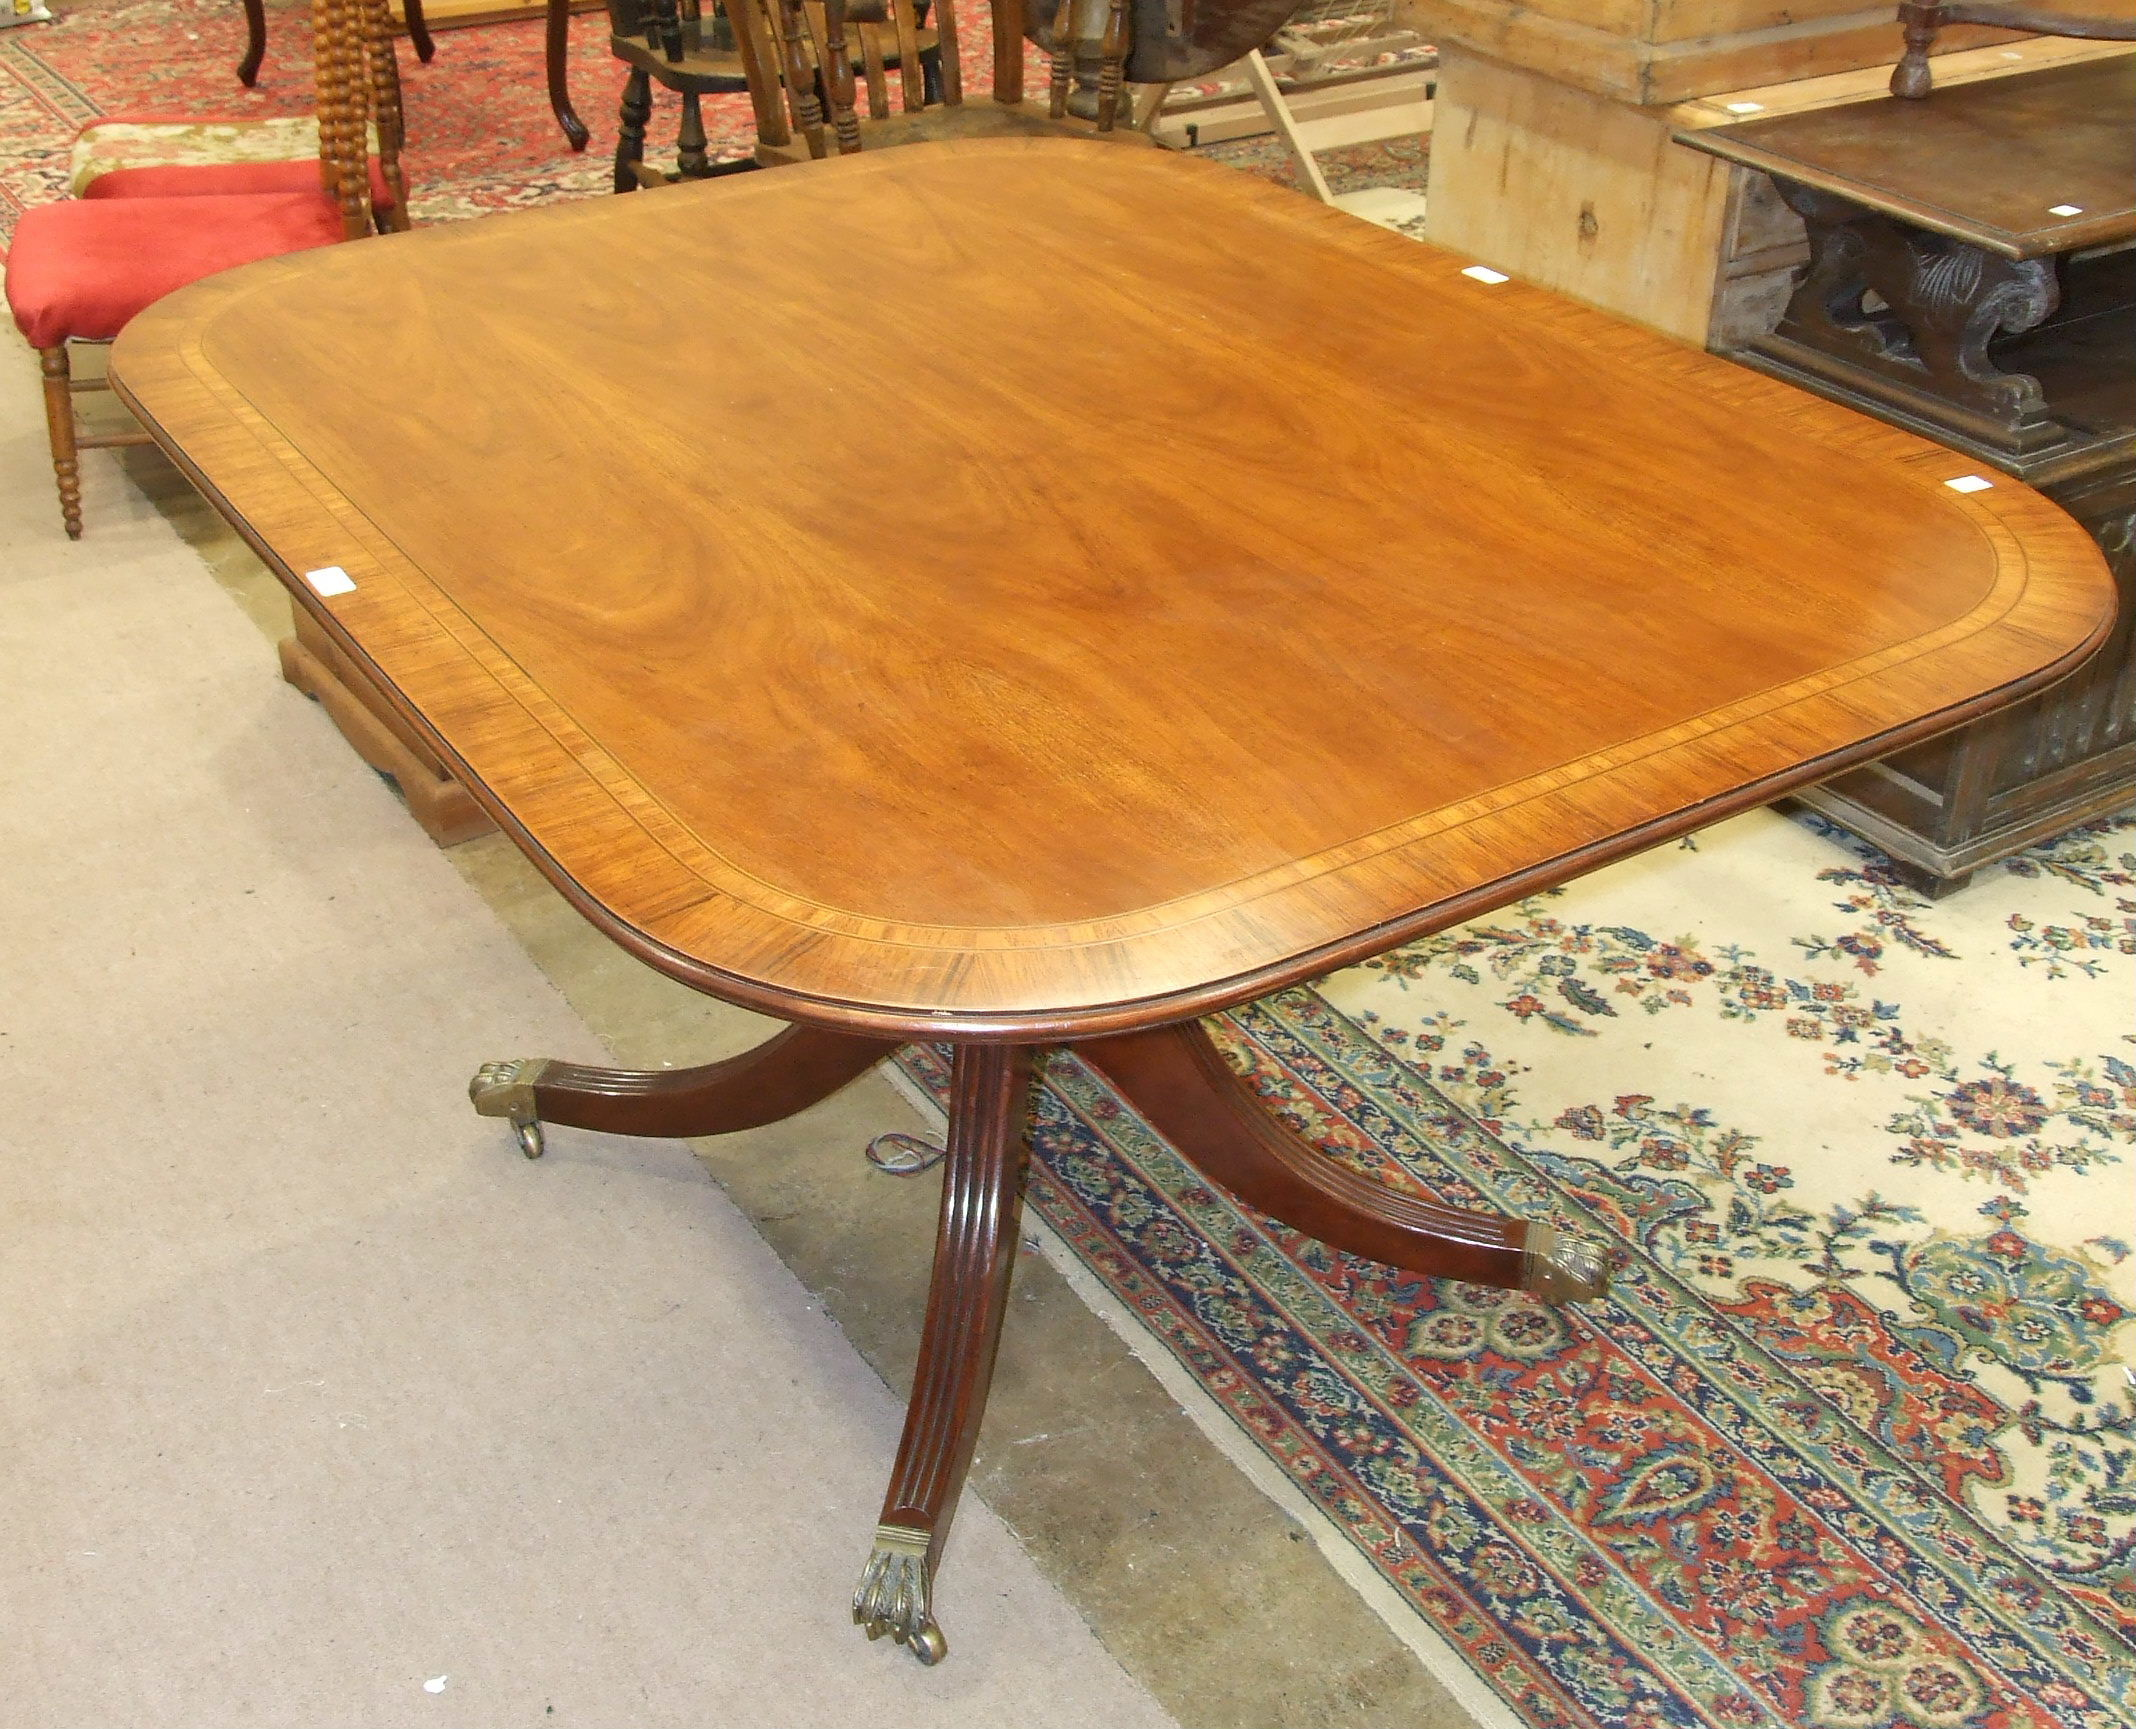 A reproduction breakfast table in the George III taste, 140 x 105cm.